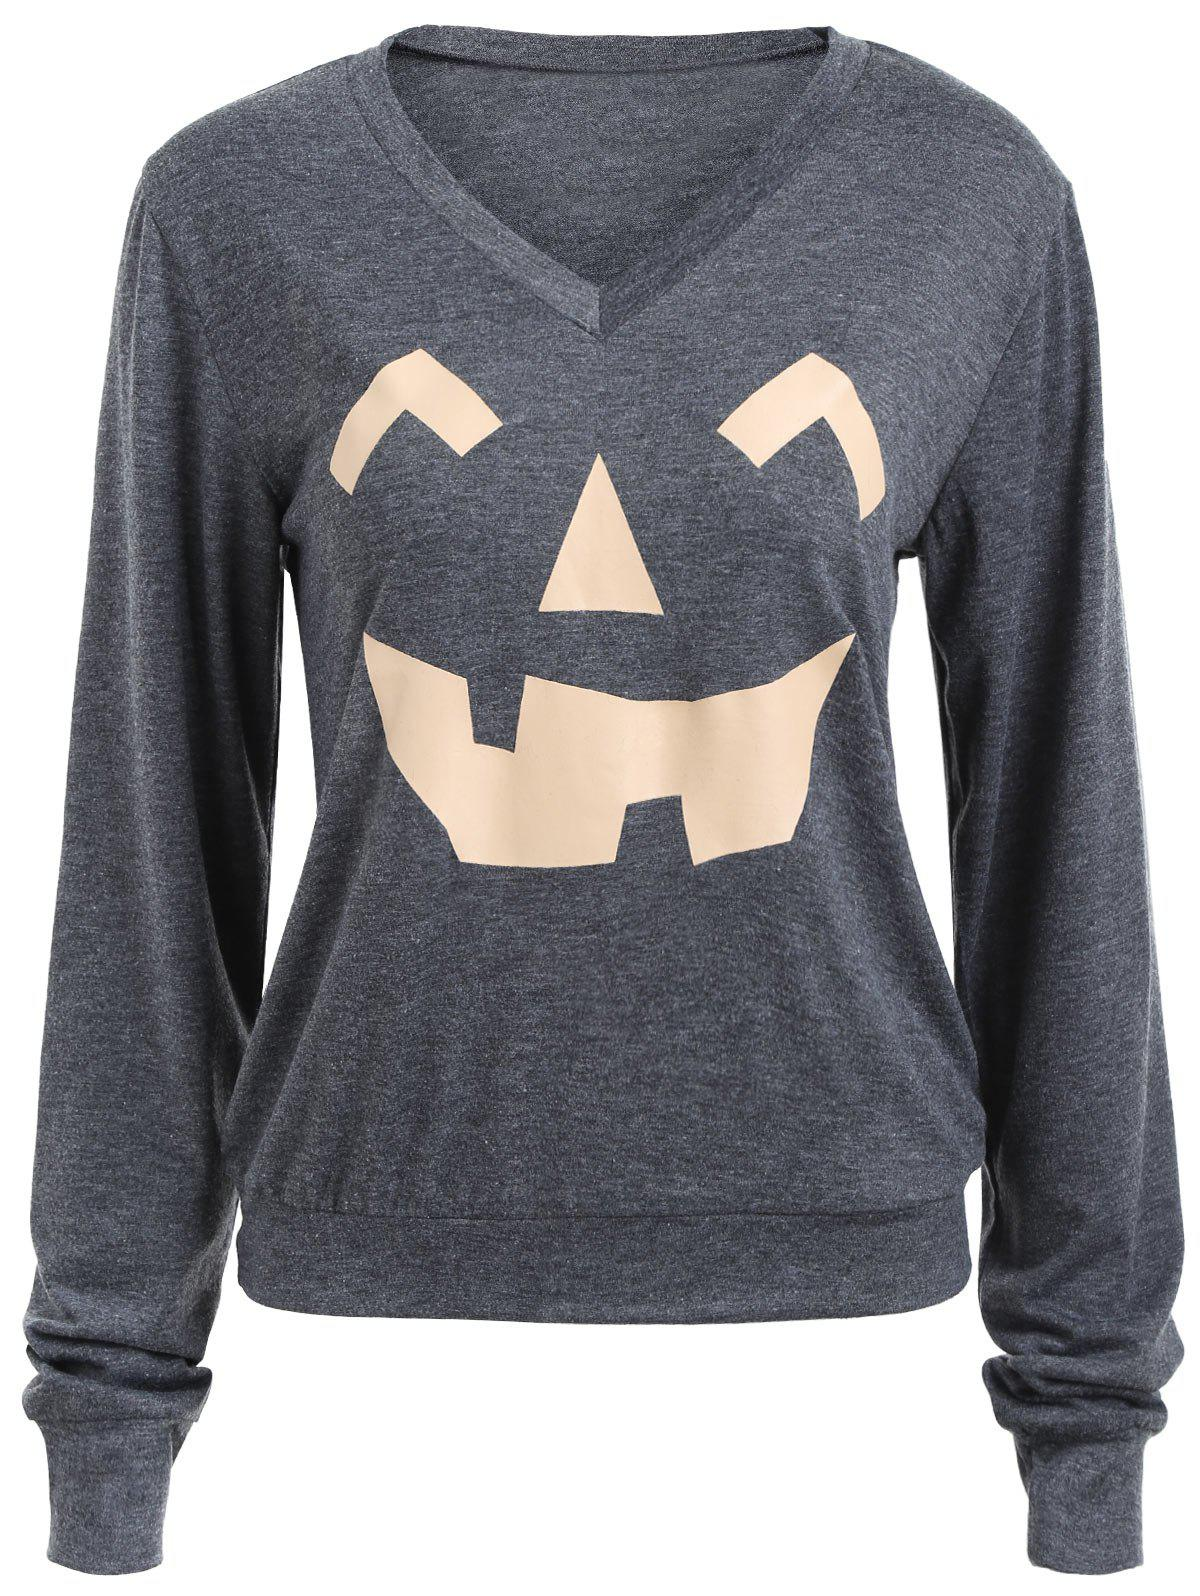 Long Sleeve V Neck Pumpkin Print Halloween Sweatshirt - DEEP GRAY XL